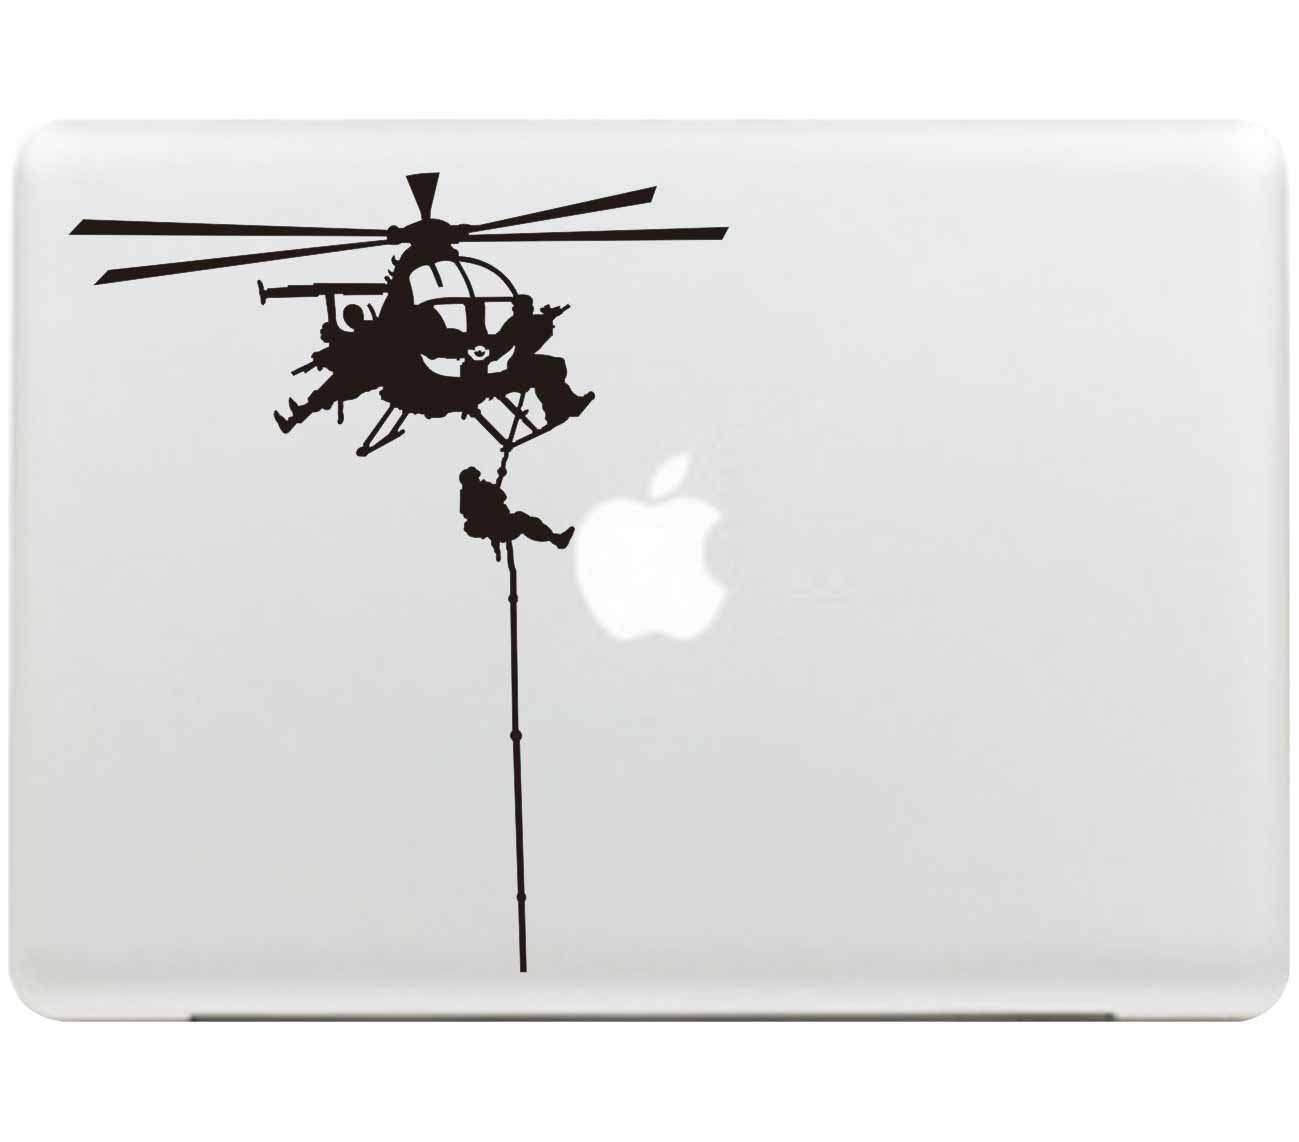 Sticker Adhesivos Macbook, Stillshine Desprendibles Creativo Colorido Art Calcomanía Pegatina para Apple MacBook Pro / Air 13 Pulgadas (Helicóptero del ...